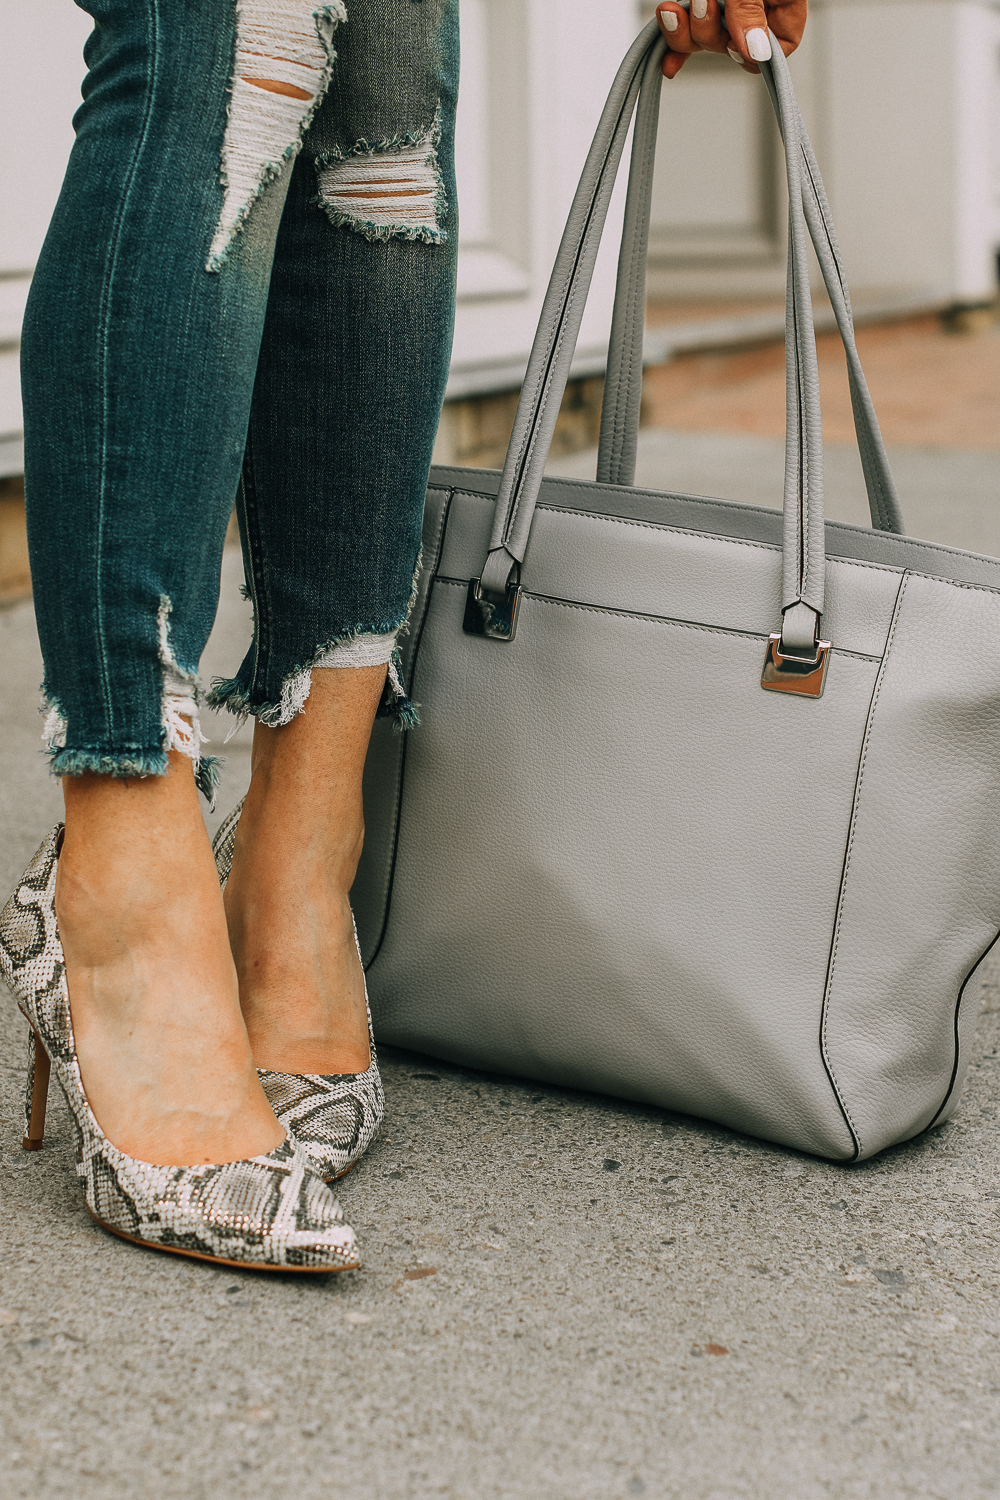 Vince camuto python print pumps paired with distressed skinny jeans by Express